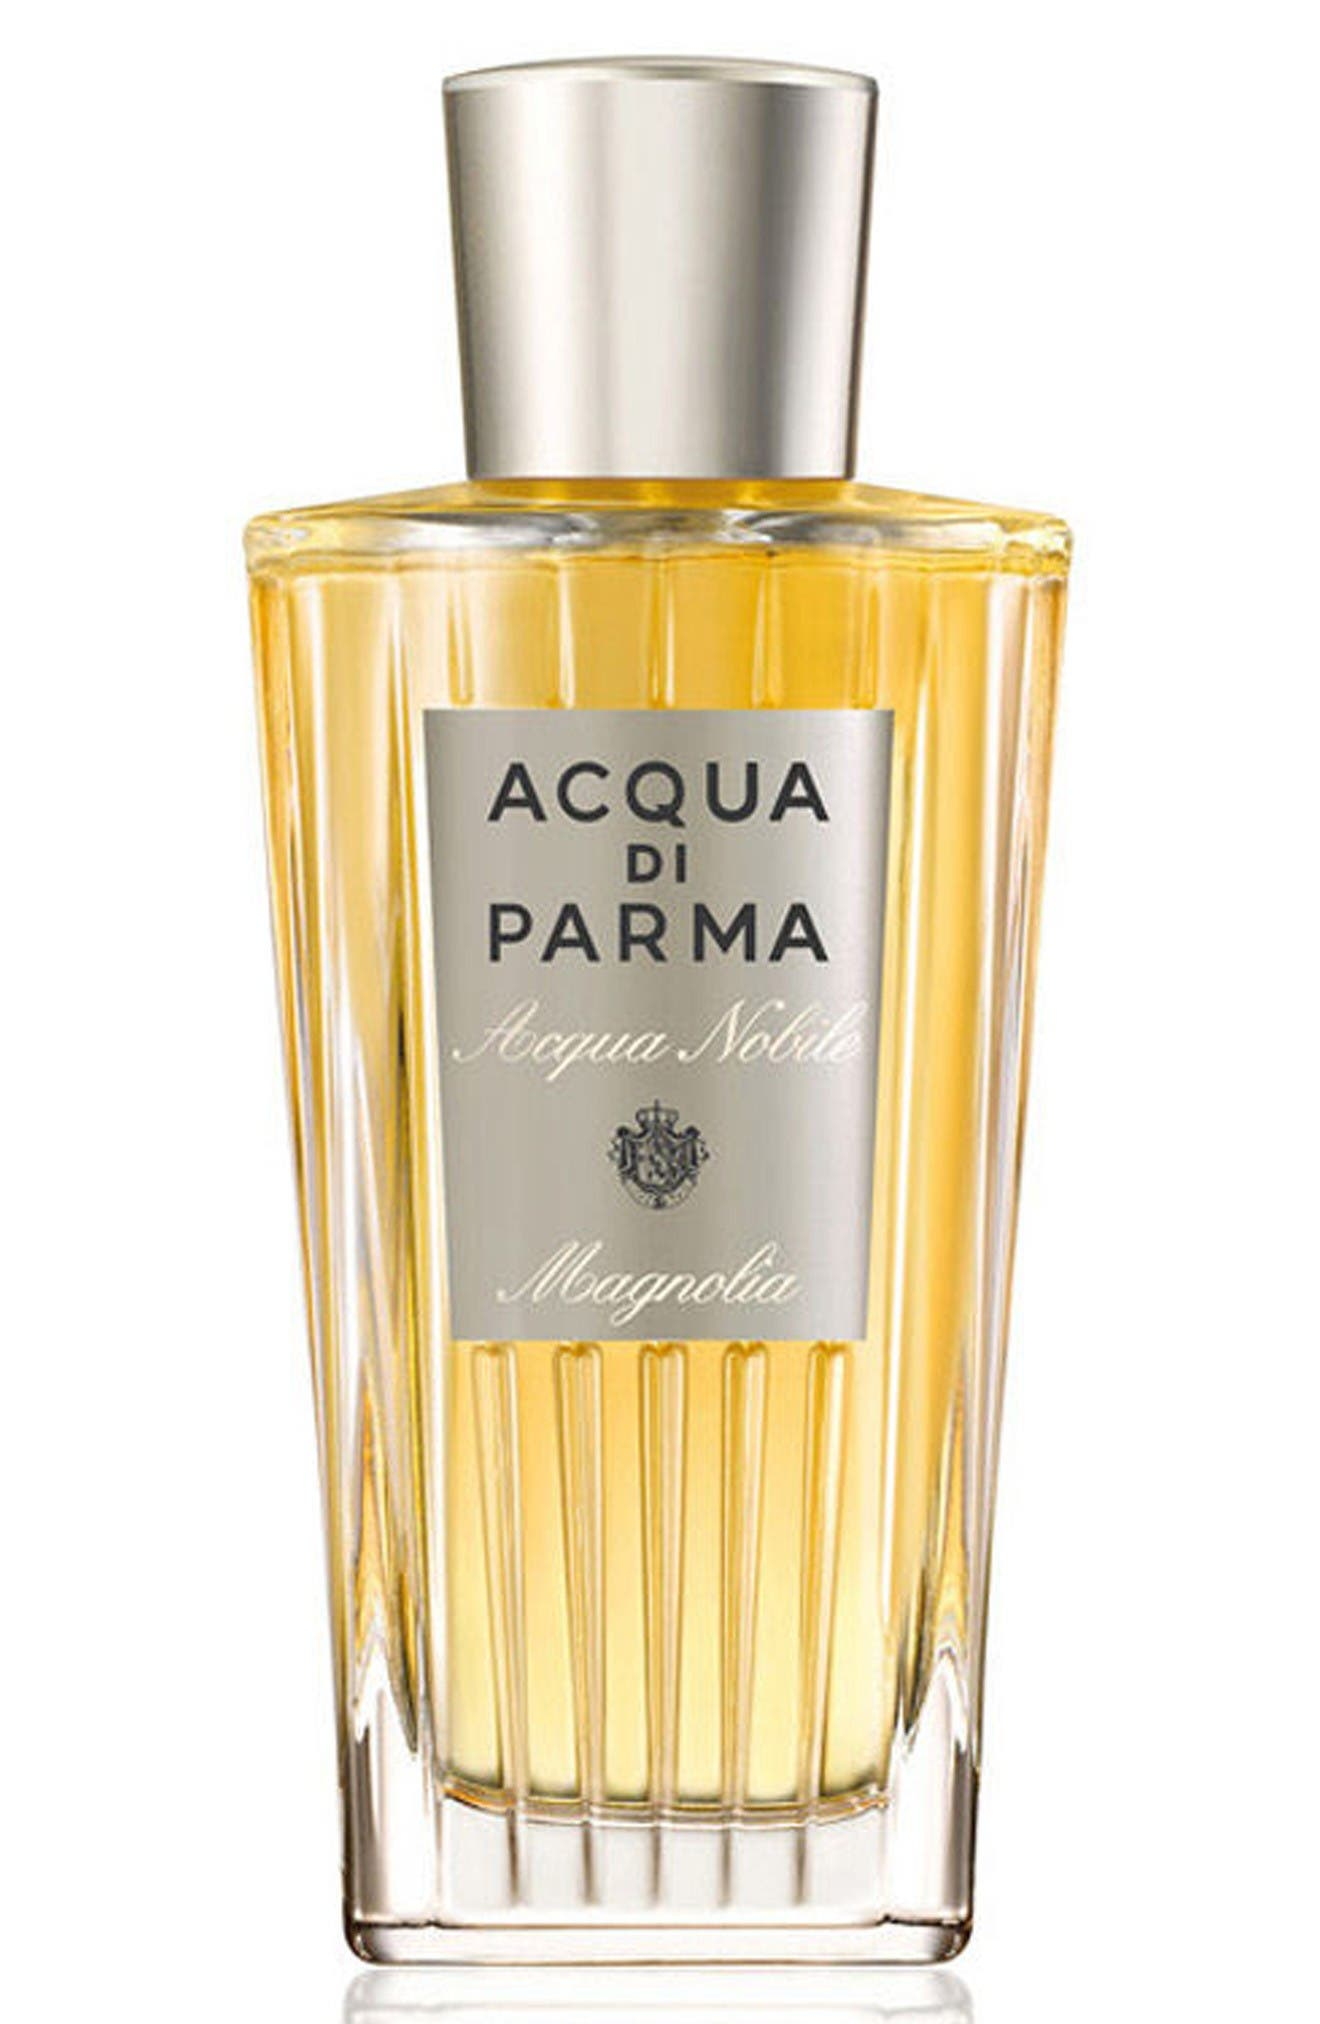 Alternate Image 1 Selected - Acqua di Parma Acqua Nobili Magnolia Fragrance